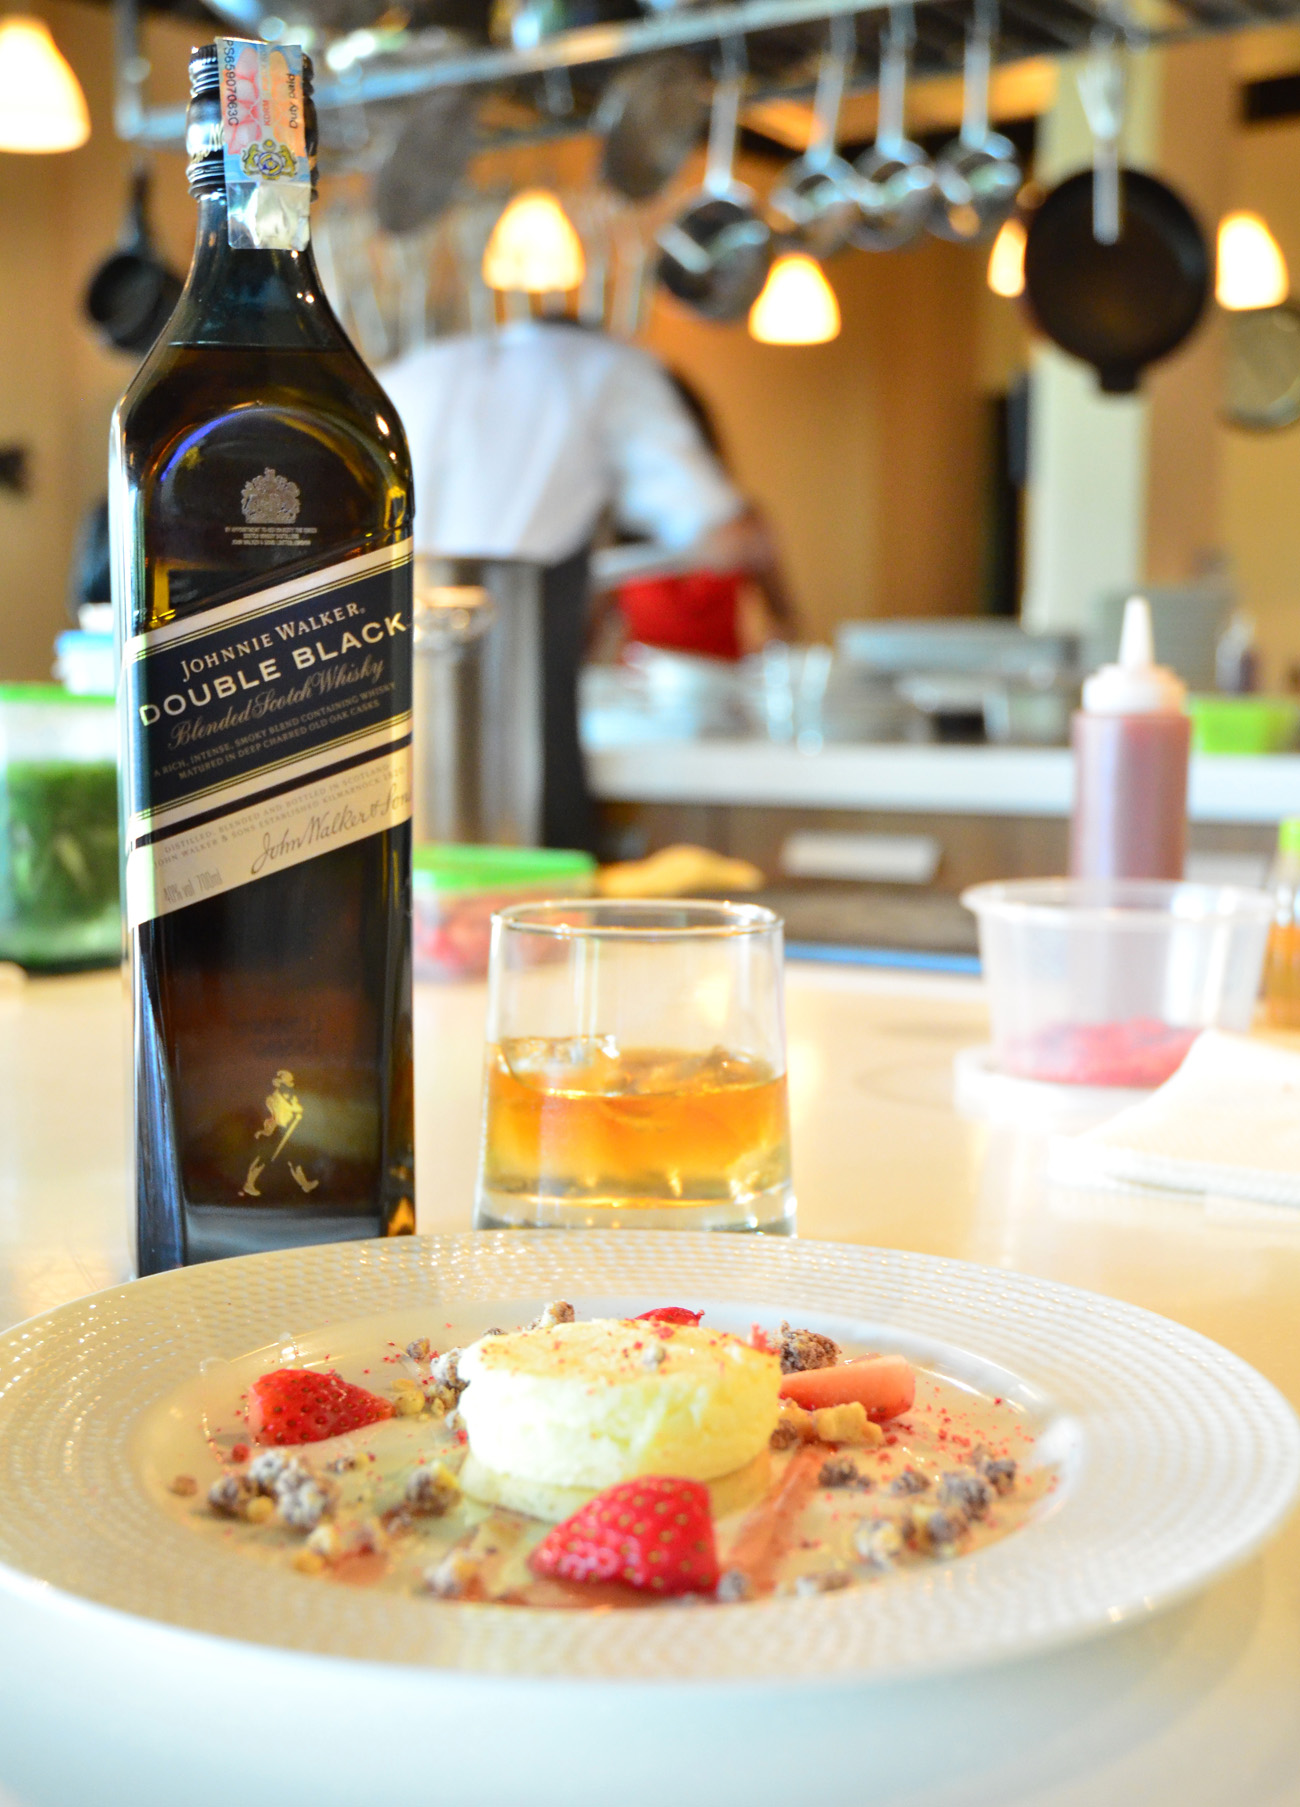 Baked Cheesecake with Johnnie Walker